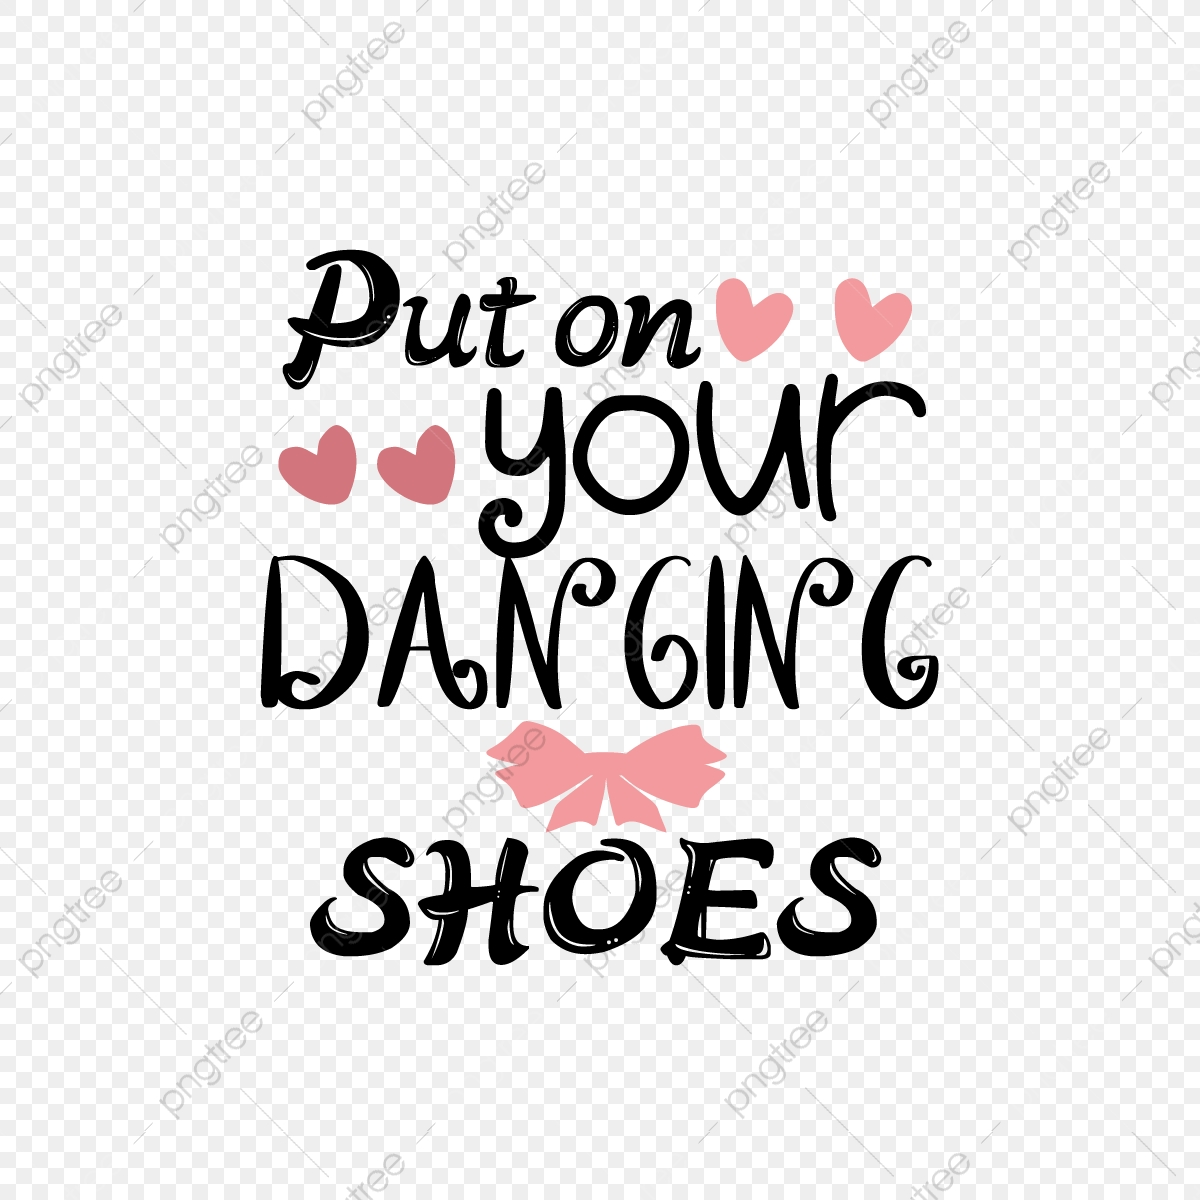 Dancing Shoes Png Vector Psd And Clipart With Transparent Background For Free Download Pngtree